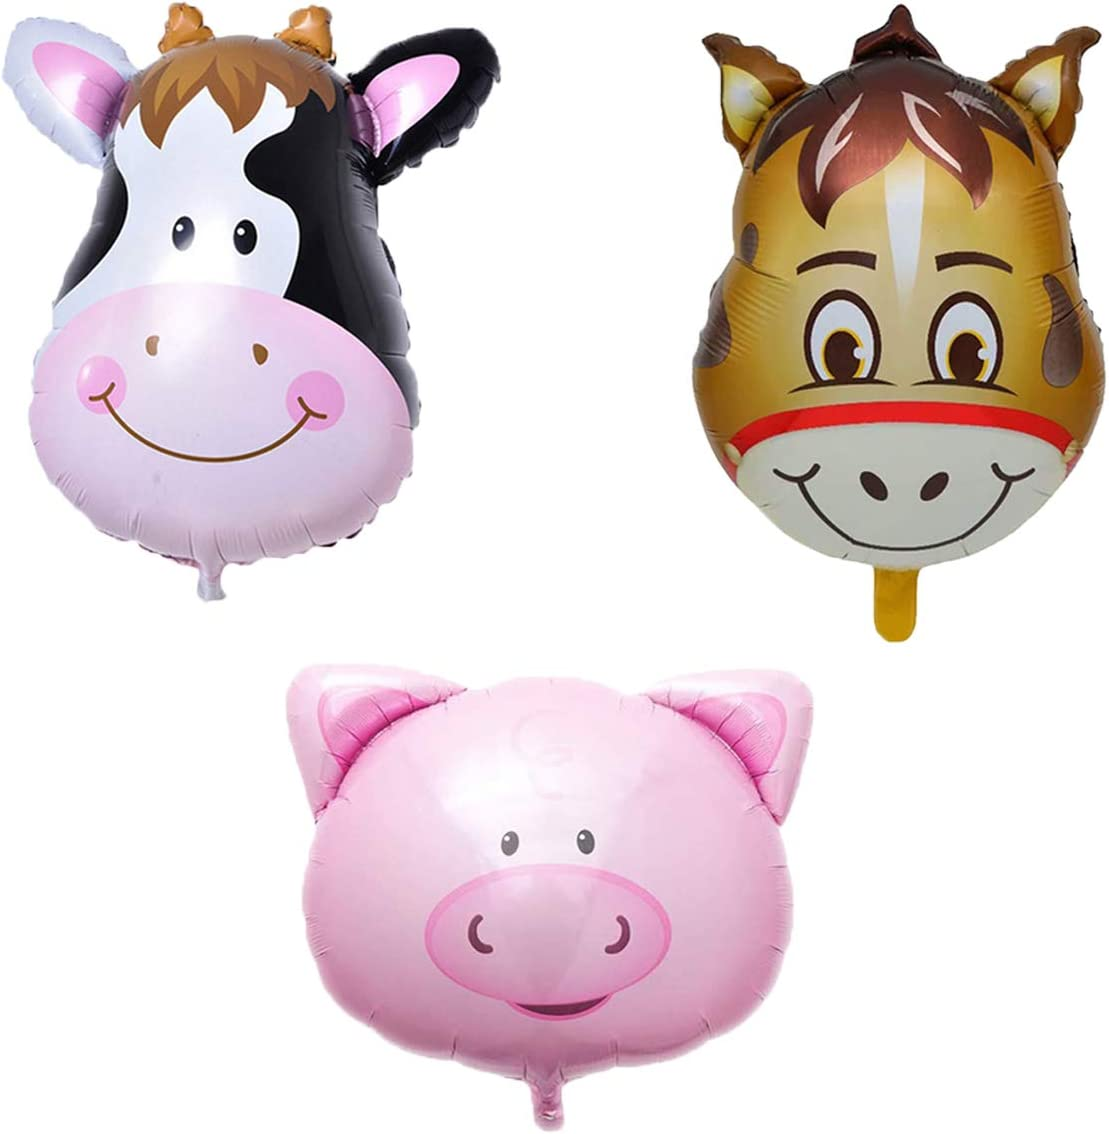 Animal Balloons Farm Party Balloons Kit Cow Donkey Pig Balloons for Birthday Baby Shower Barnyard Farm Themed Party Decorations Supplies 3Pcs